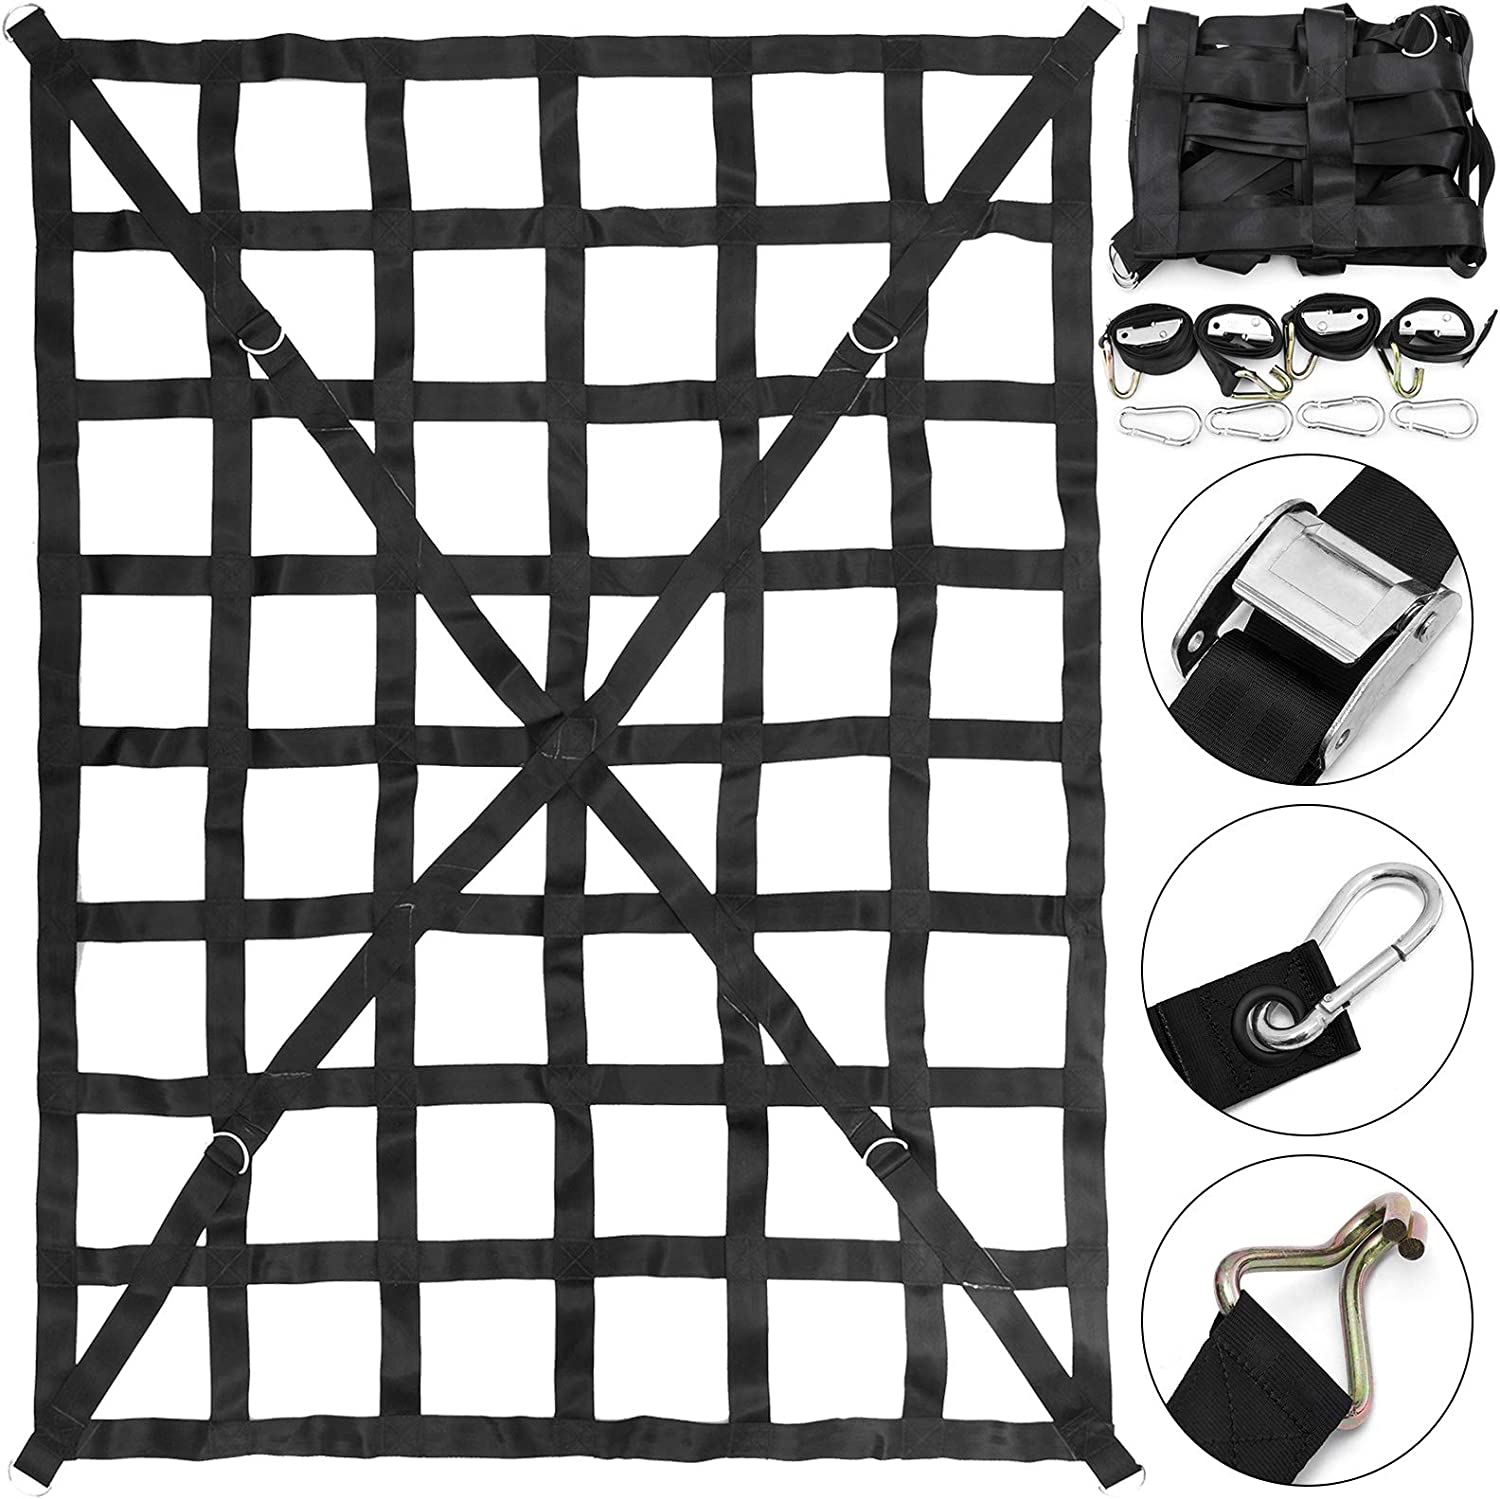 Mophorn 50 x 66 Cargo Net Capacity 4.2 x 5.5 Heavy Duty Cargo Sets for Pickup Trucks with Cam Buckles /& S-Hooks 1100LBS Cross Strap Truck Bed Cargo Net